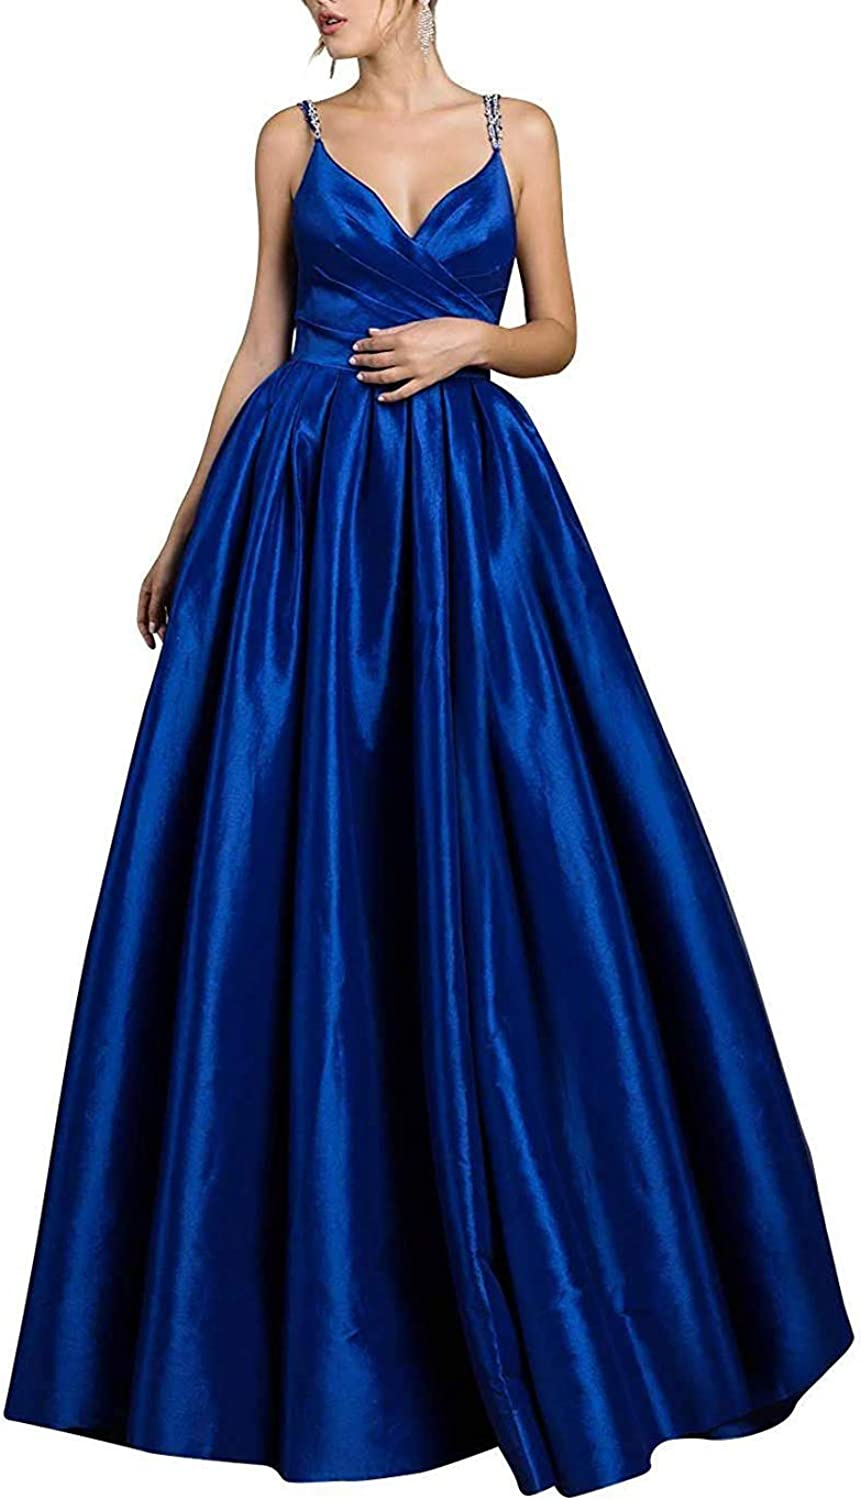 Staypretty Long Prom Gowns Satin Aline V Neck Beaded Evening Dresses with Pockets